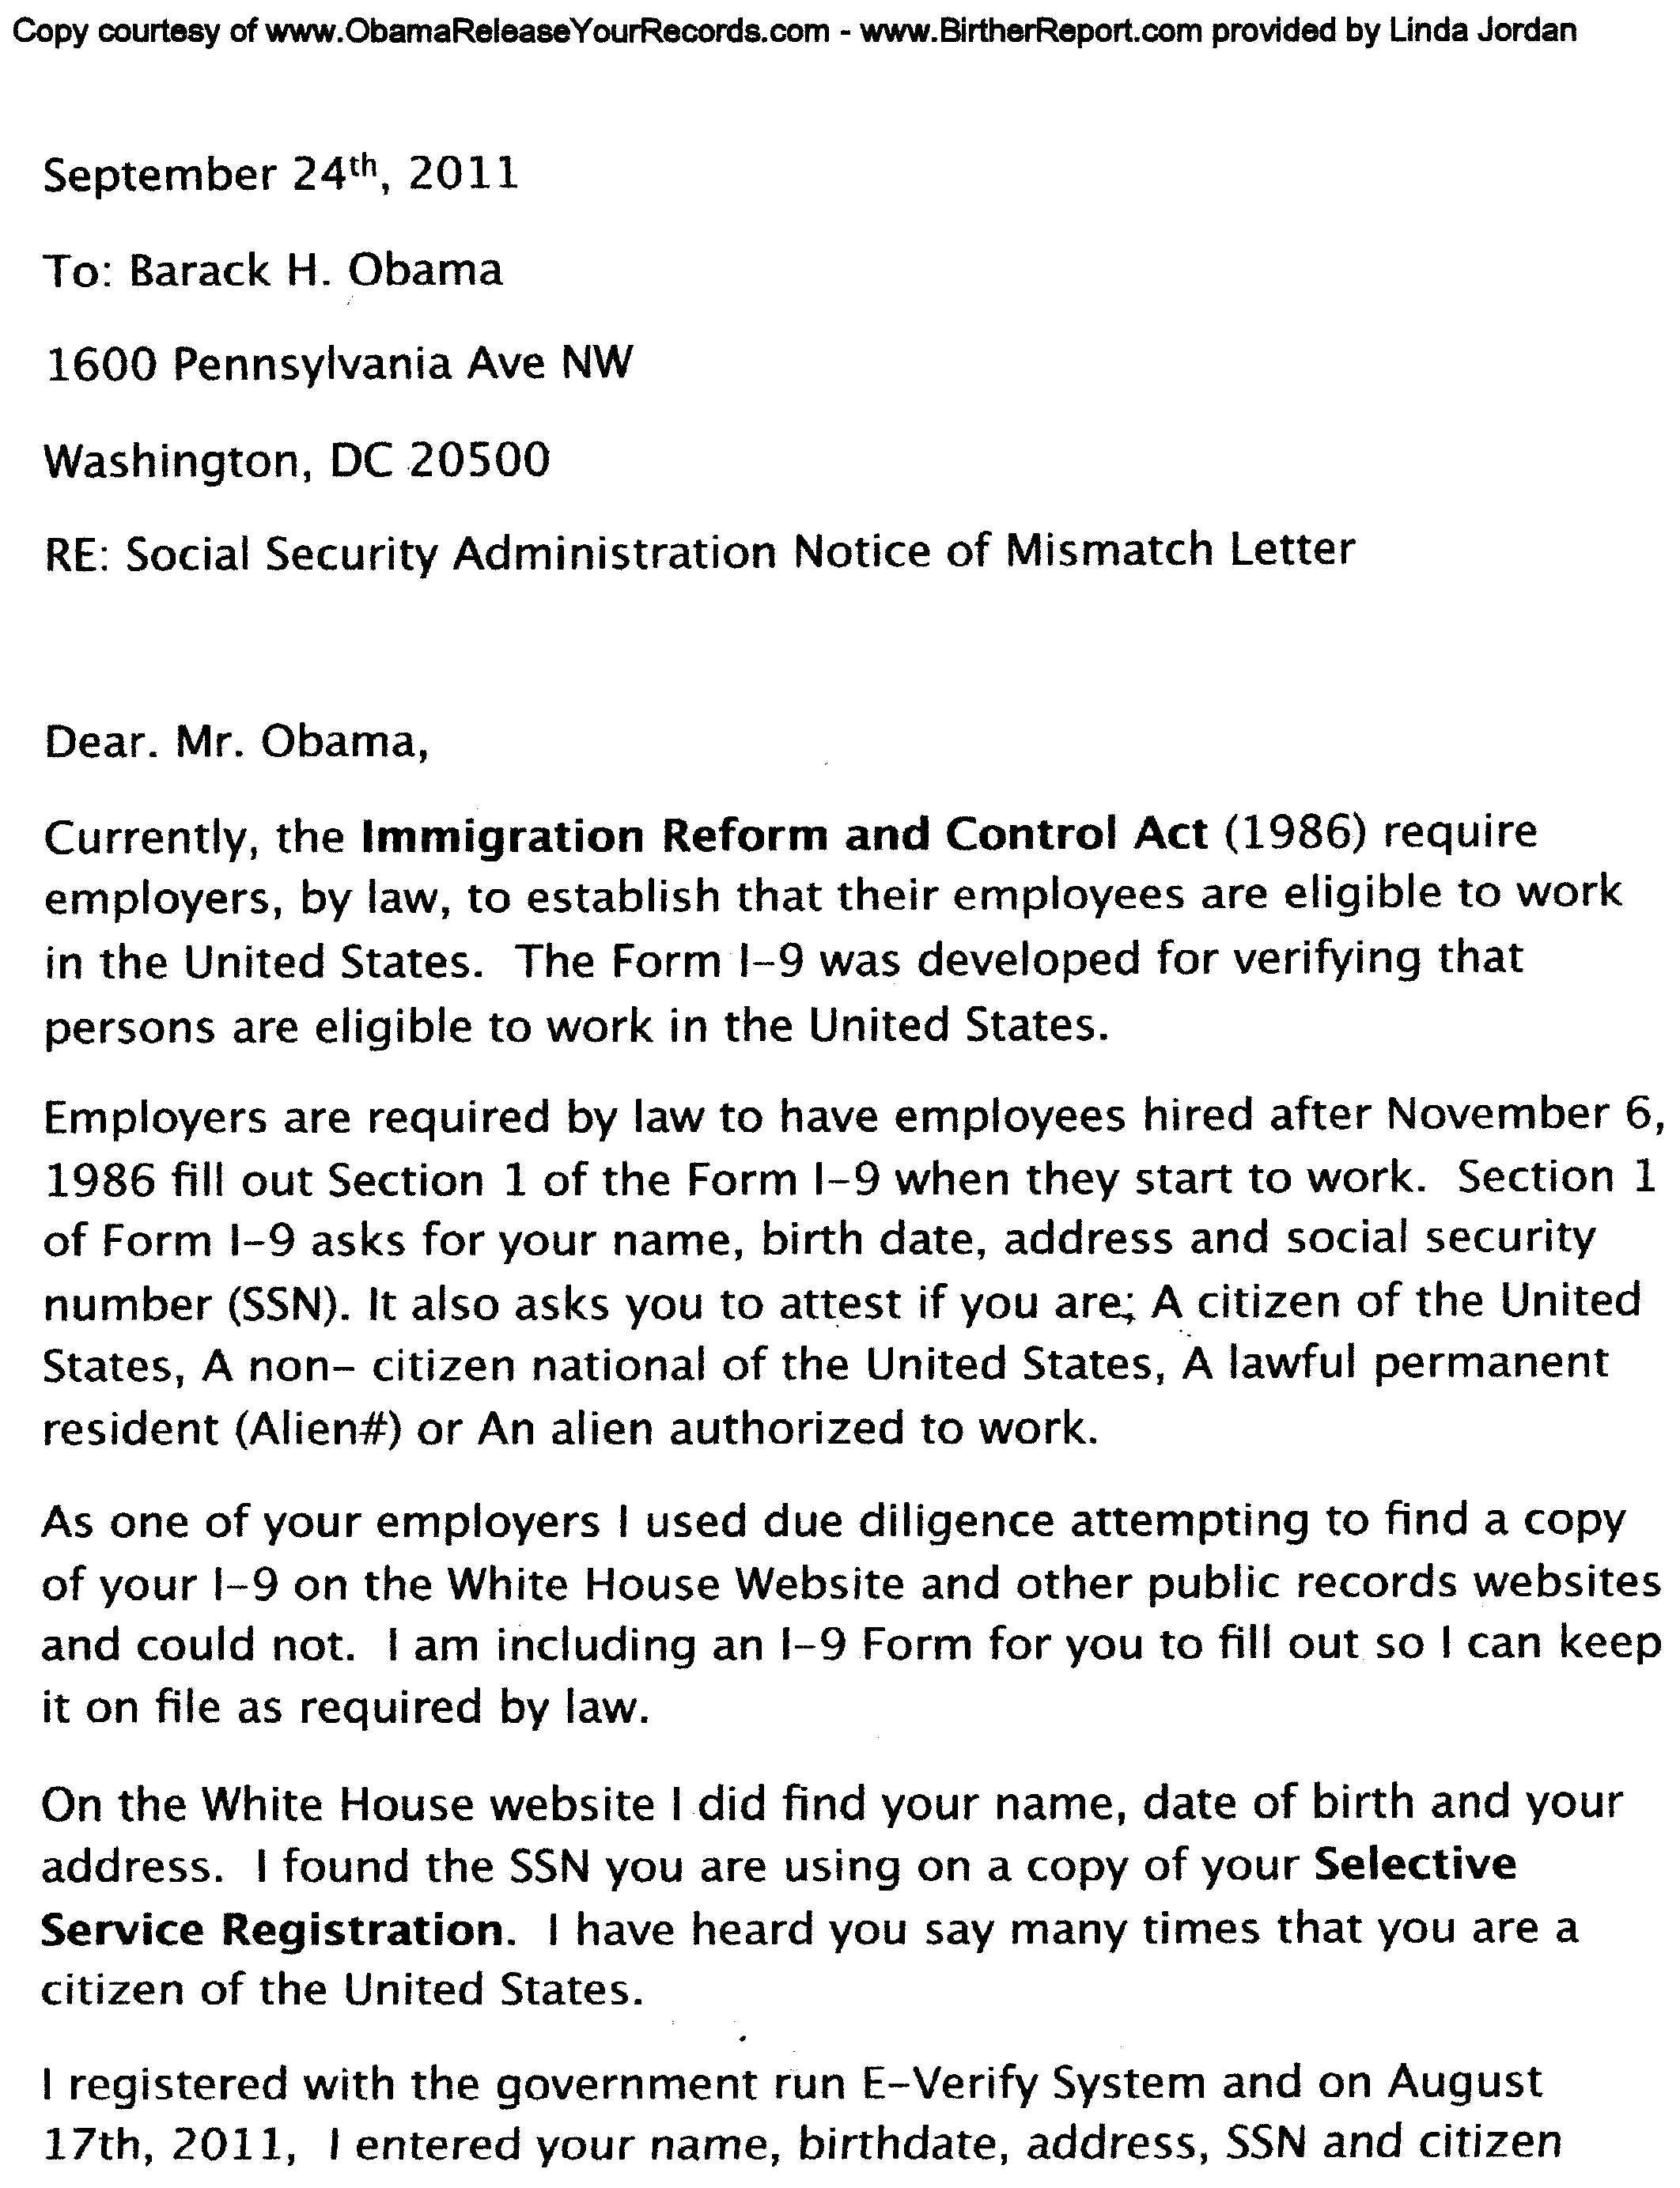 obamas connecticut social security number flagged by e verify how